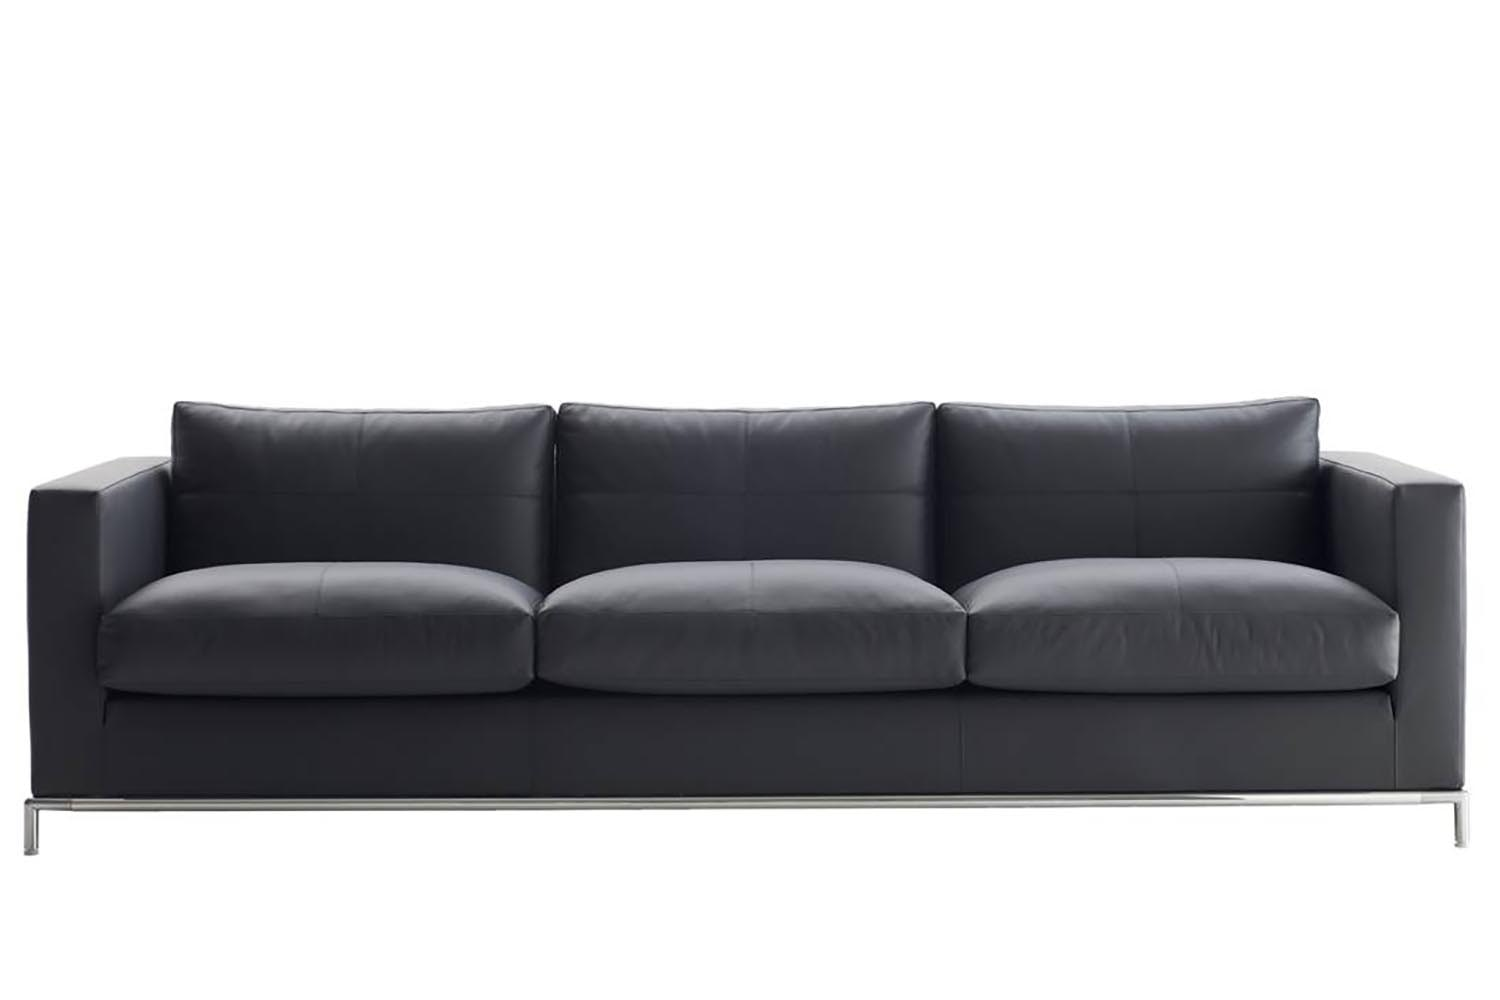 Project George Sofa by Antonio Citterio for B&B Italia Project